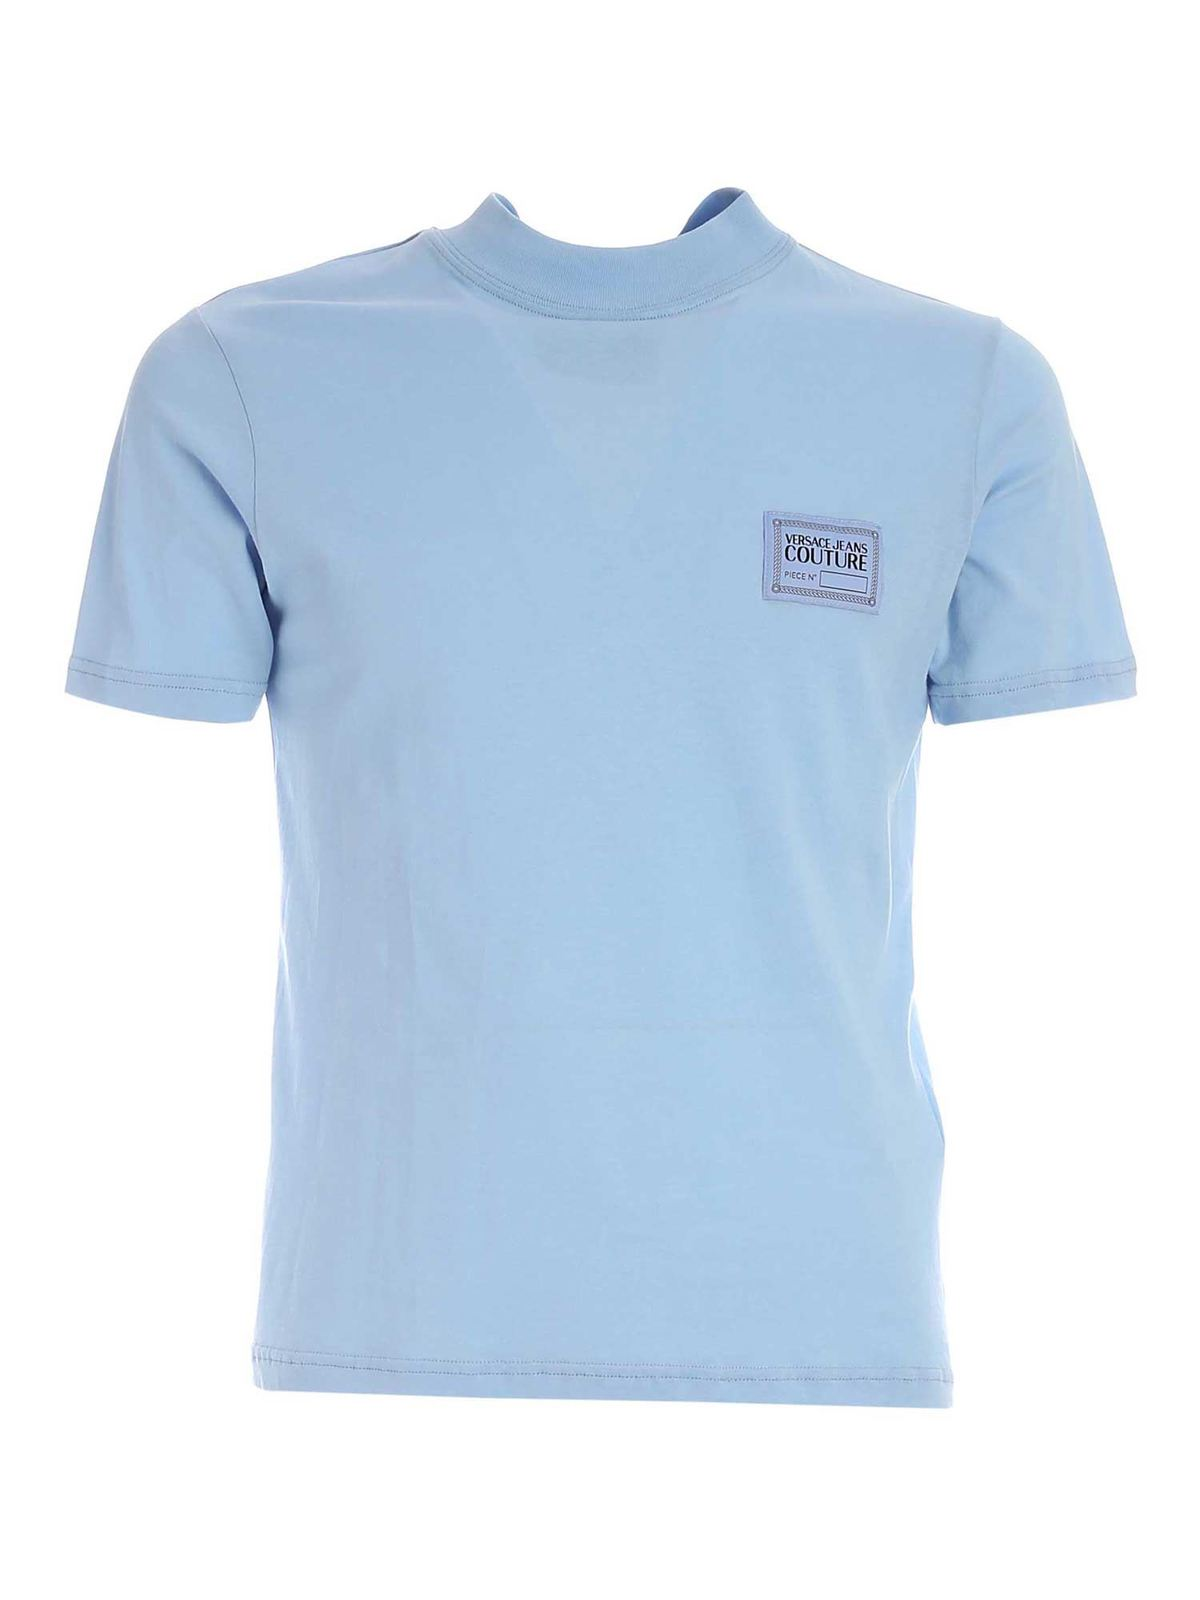 VERSACE JEANS COUTURE LOGO PATCH T-SHIRT IN LIGHT BLUE